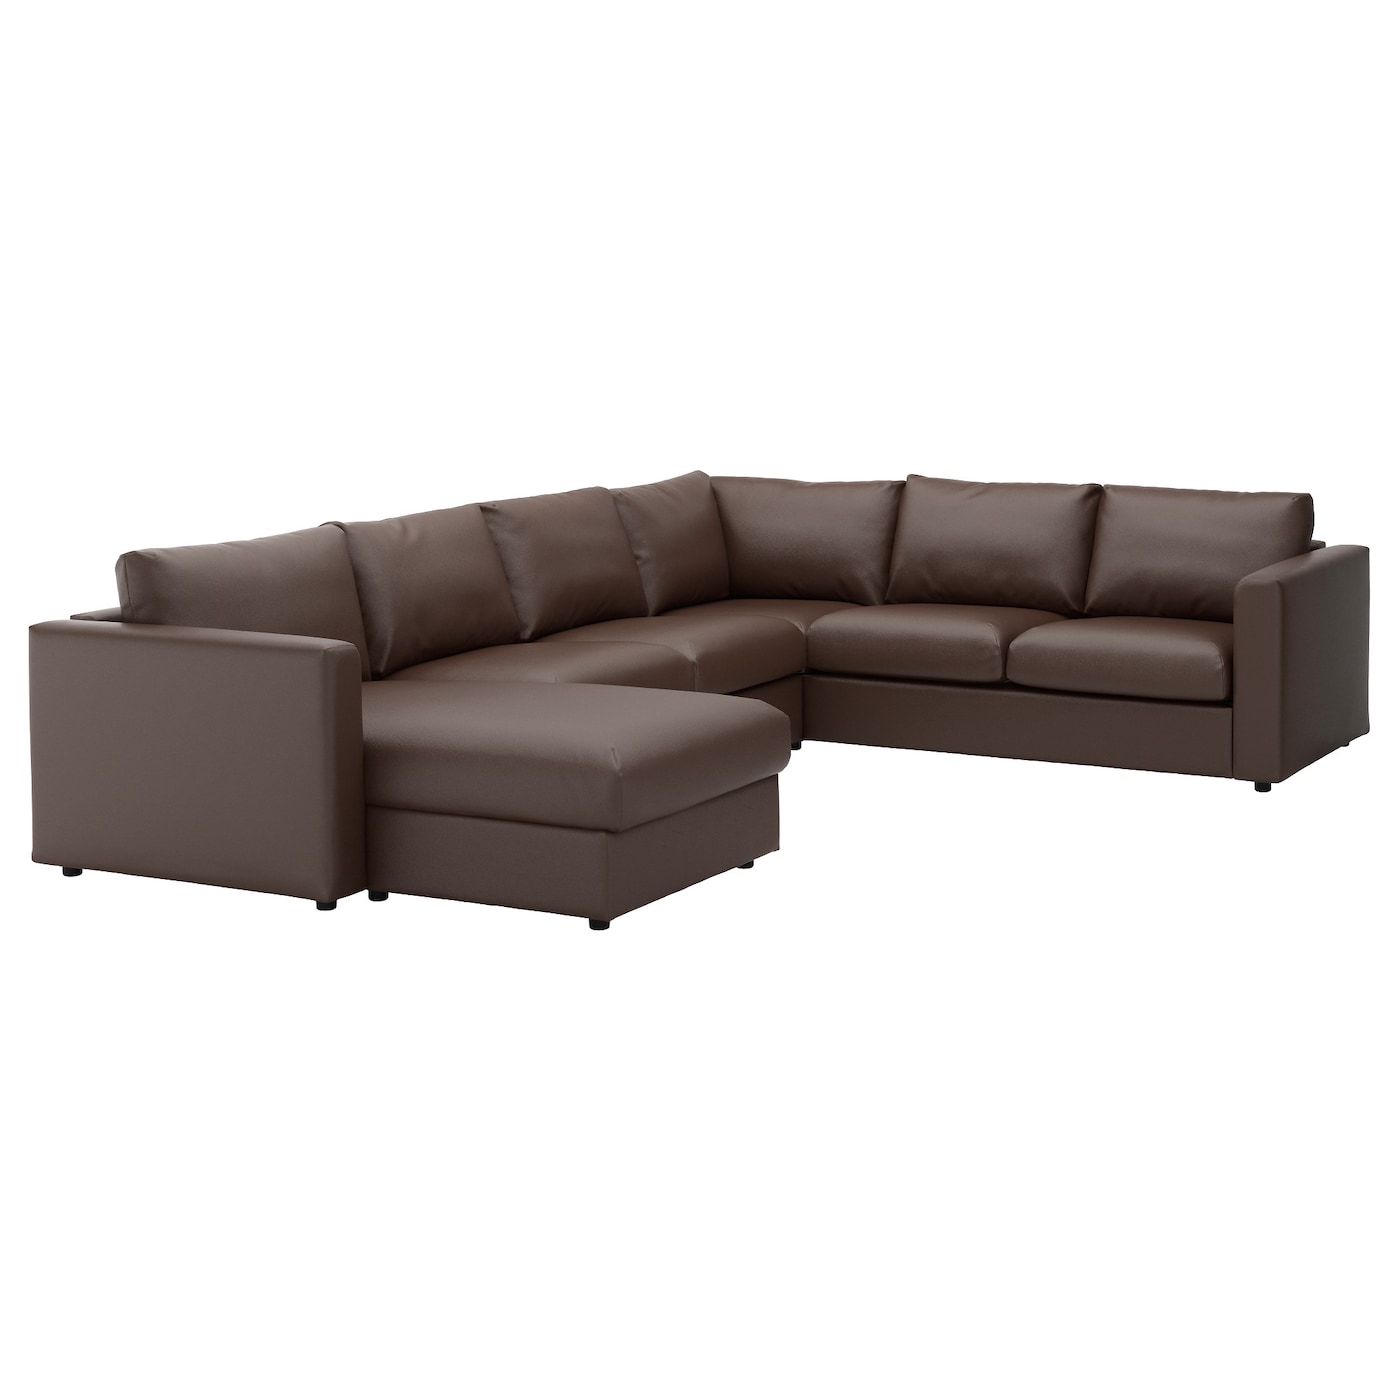 Vimle corner sofa 5 seat with chaise longue farsta dark brown ikea - Chaise empilable ikea ...